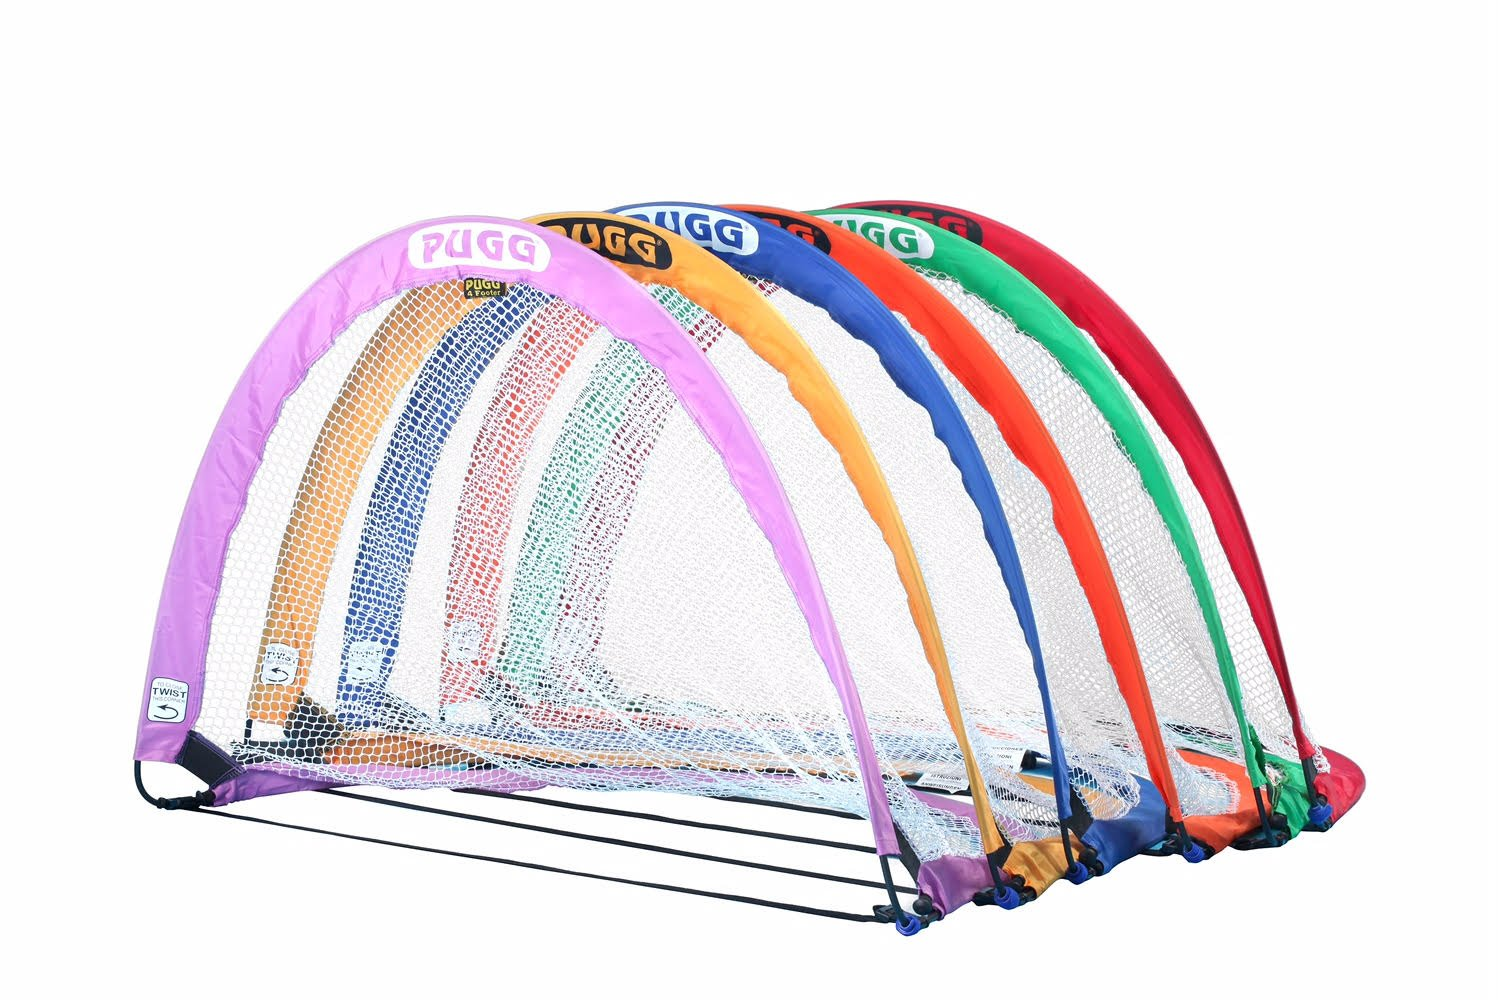 PUGG 4 Foot Portable Soccer Goal Set - Pack of 6